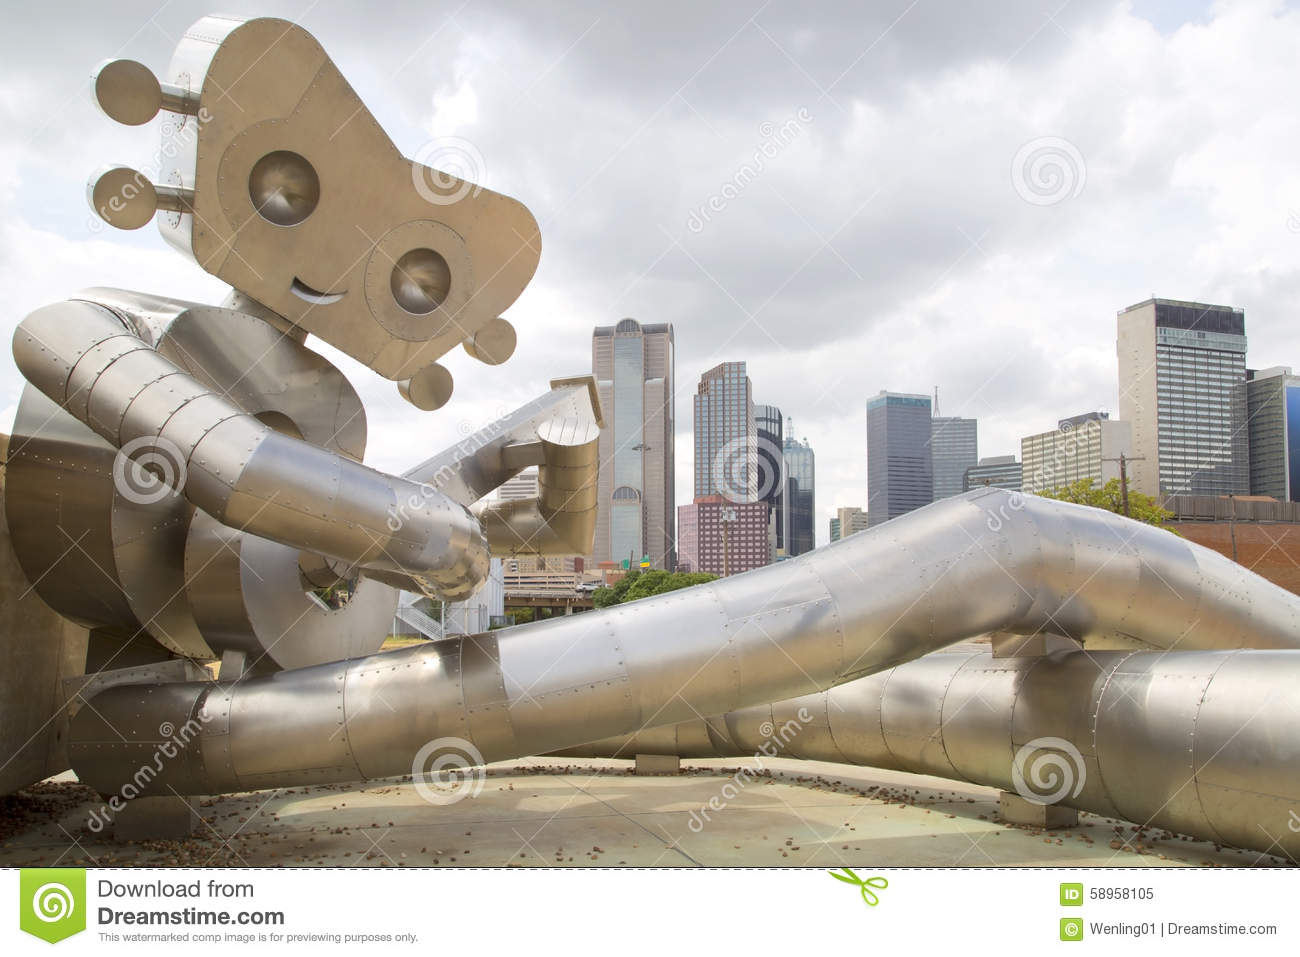 The Walking Man and   Dallas skyline